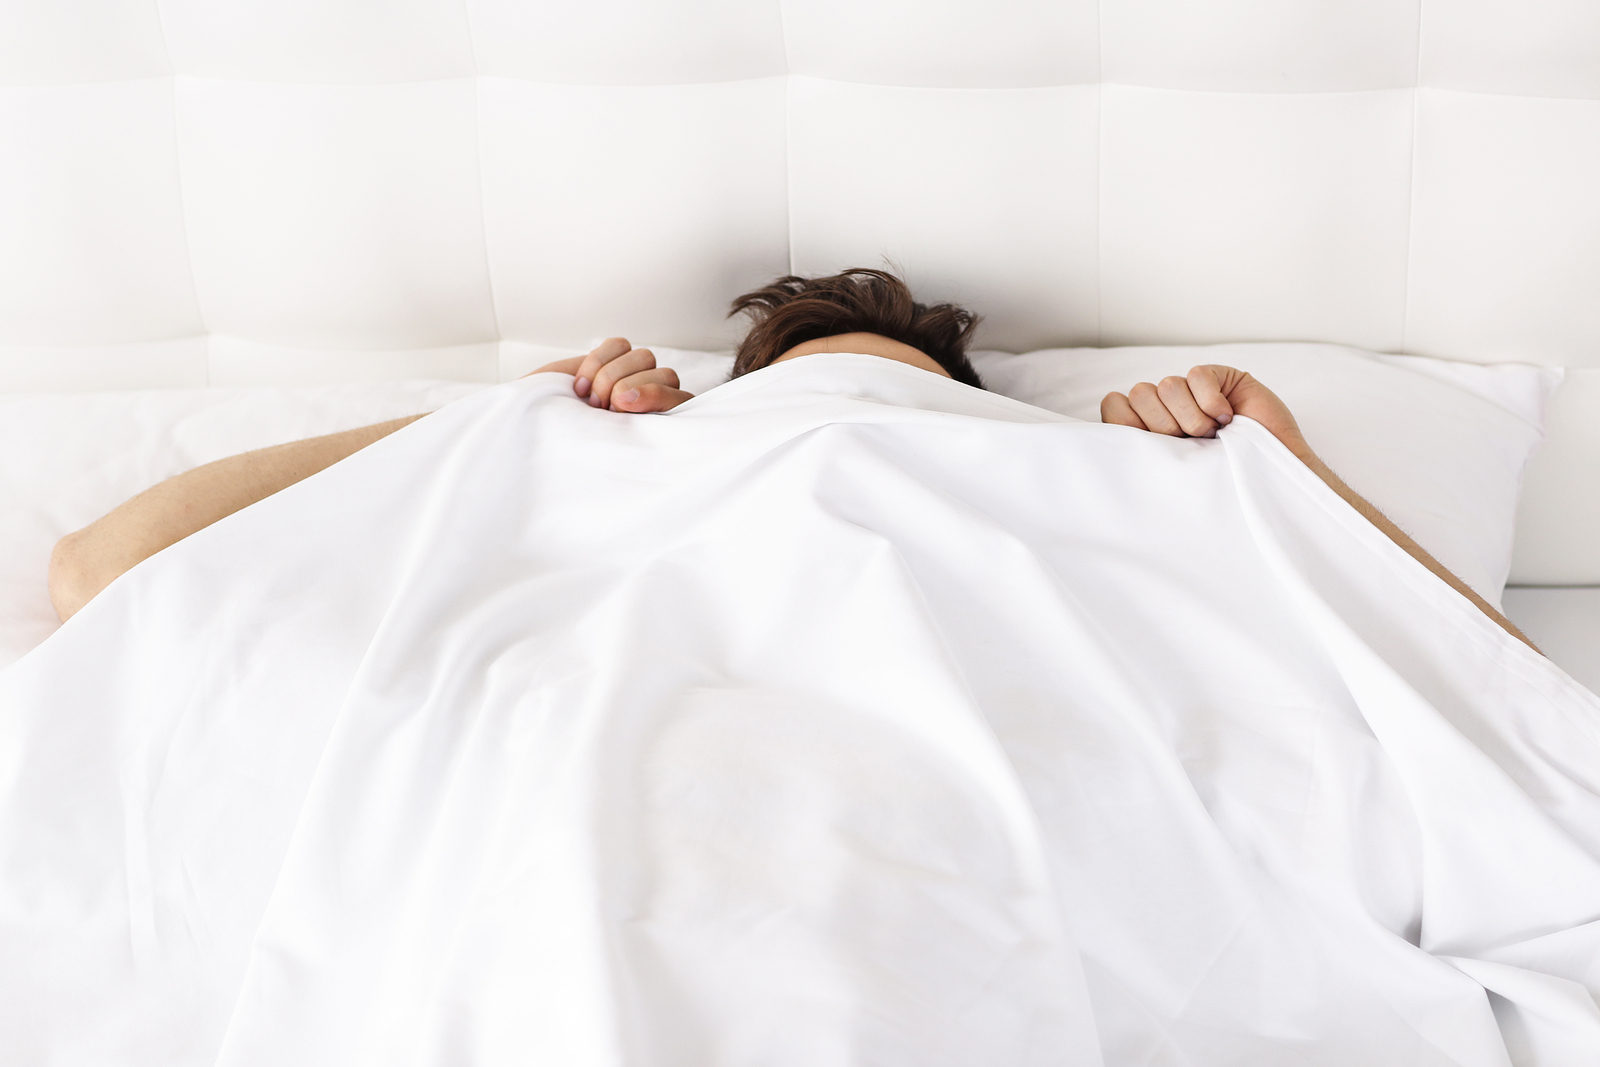 Morning concept. Man under covering in bed.